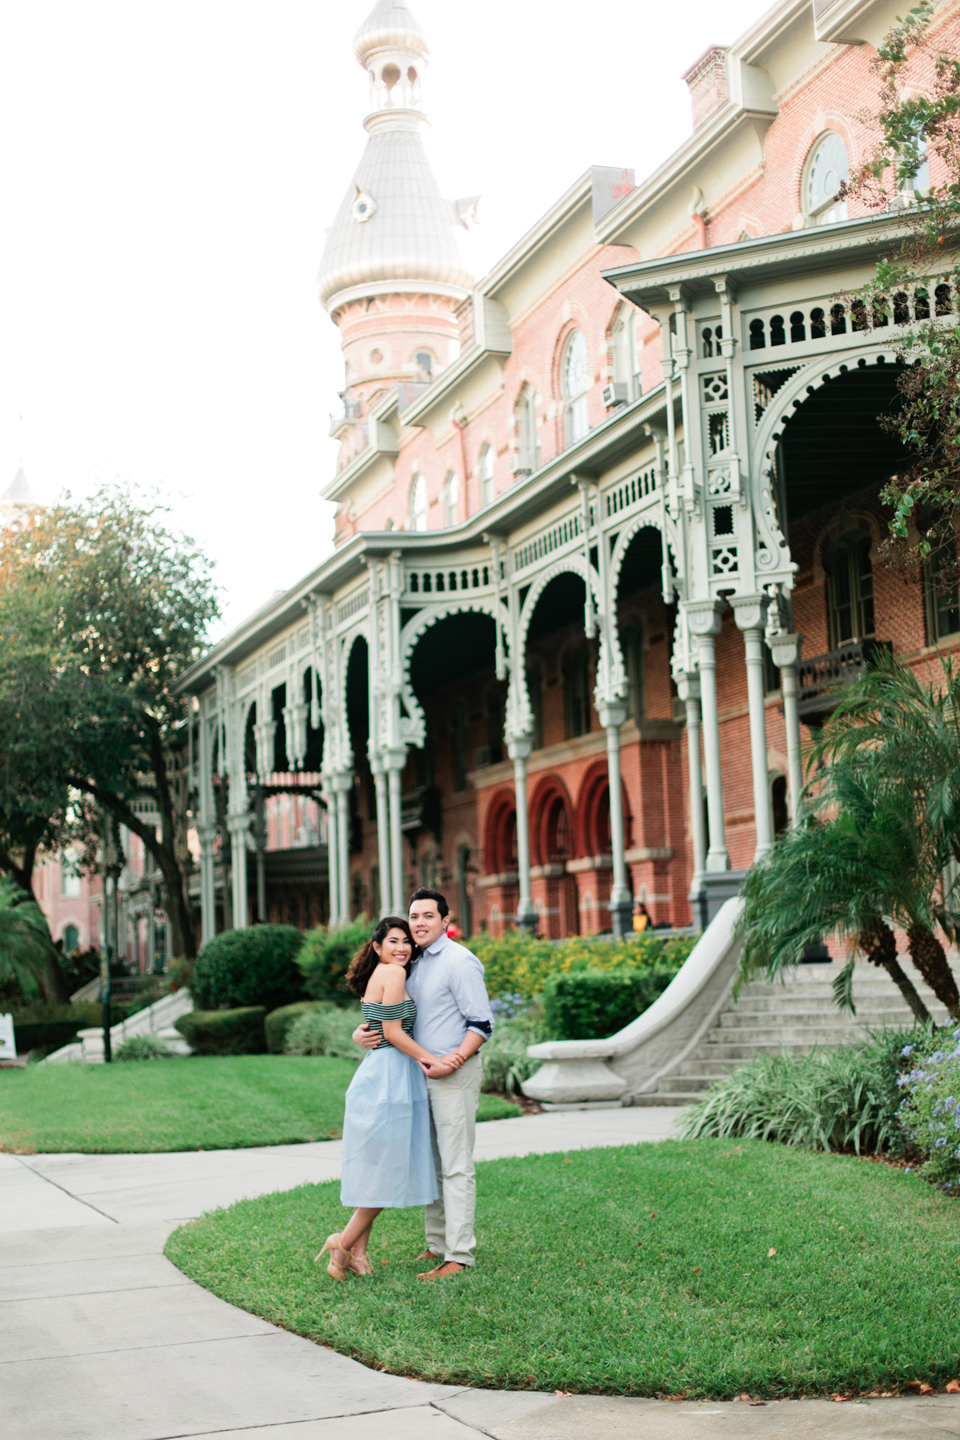 Image of an engaged couple embracing in front of the Henry B. Plant museum in Tampa, Florida.